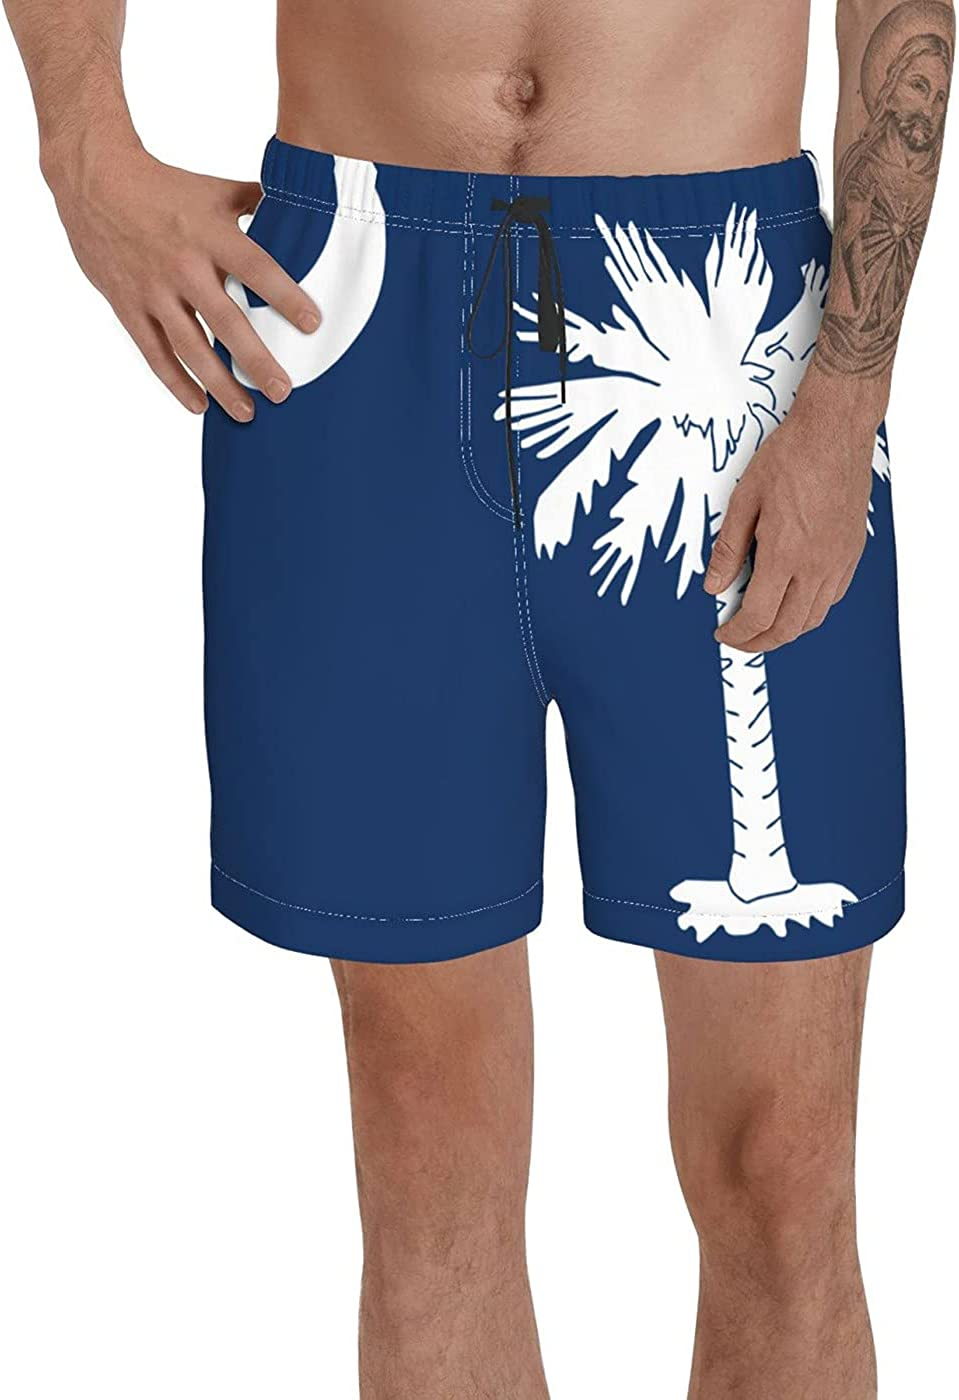 South Carolina State Polyester Flag Men's 3D Printed Funny Summer Quick Dry Swim Short Board Shorts with